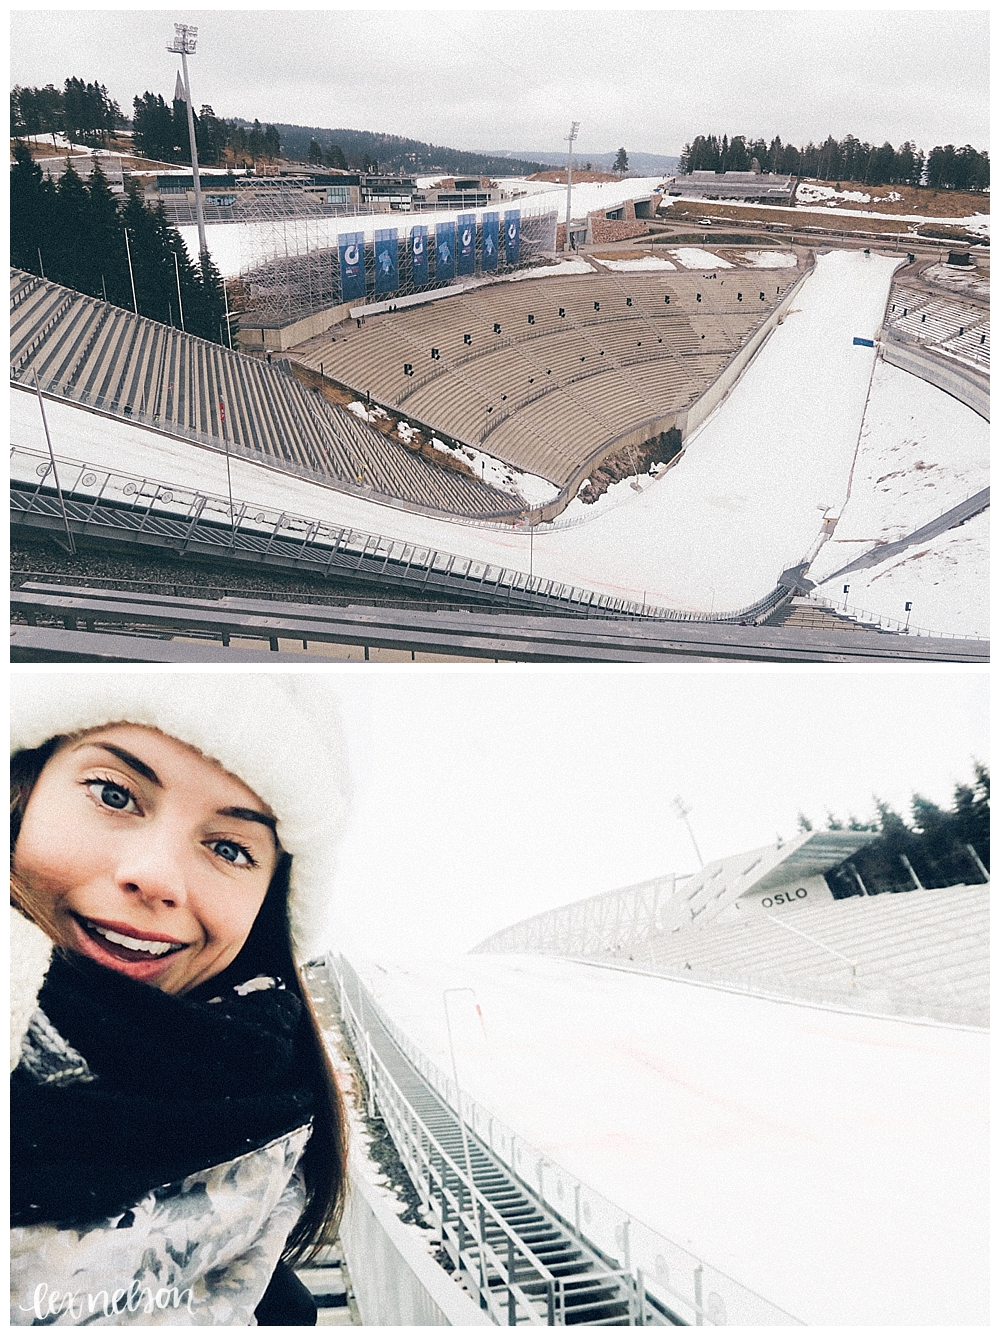 Holmenkollen Ski Jump. Wow, this thing is tall! I'm still smiling because this picture was taken before I climbed up all those stairs!